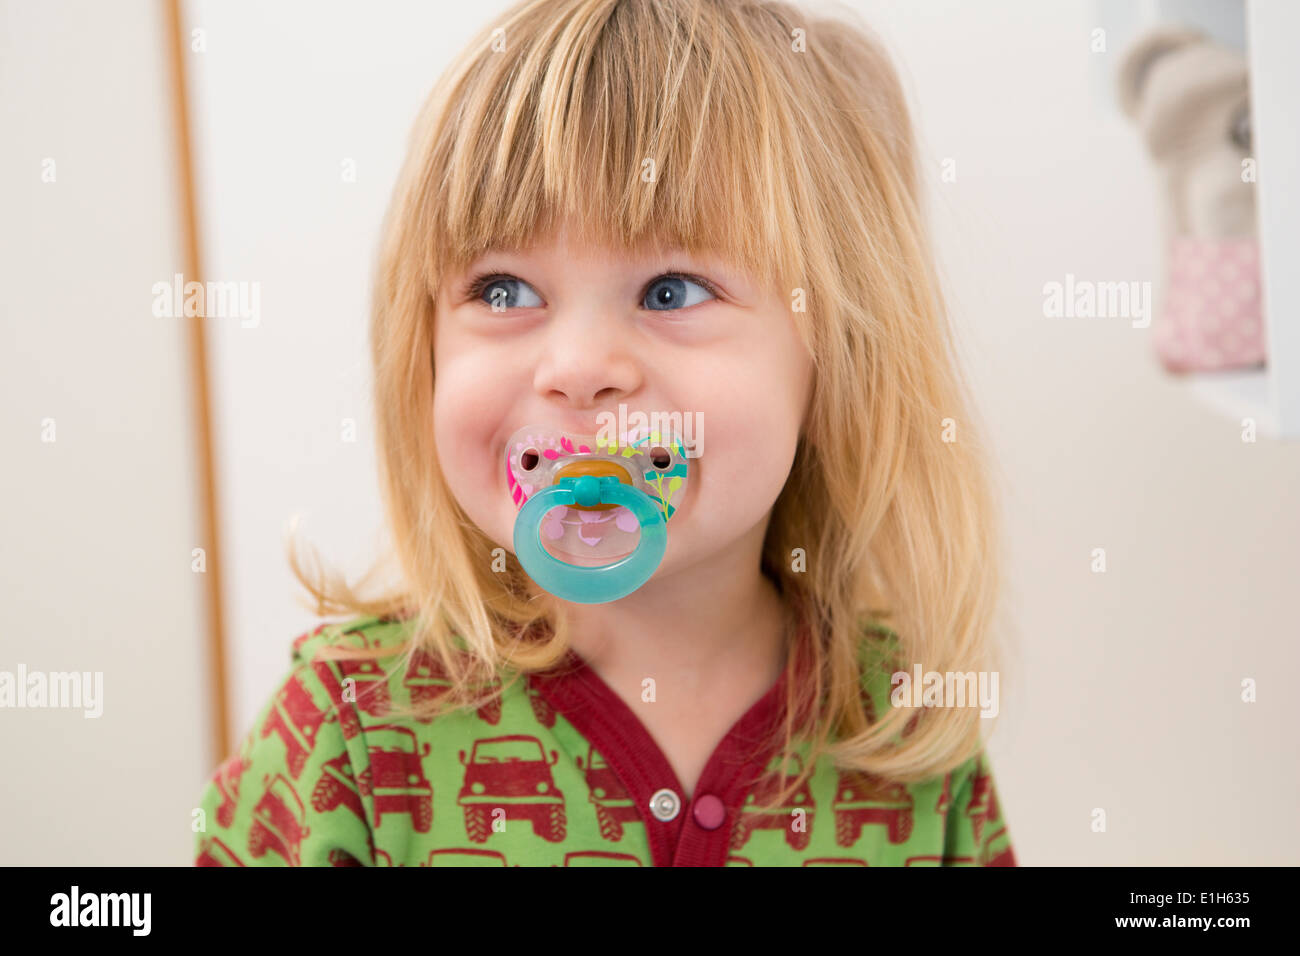 portrait of happy 2 year old girl with pacifier stock photo